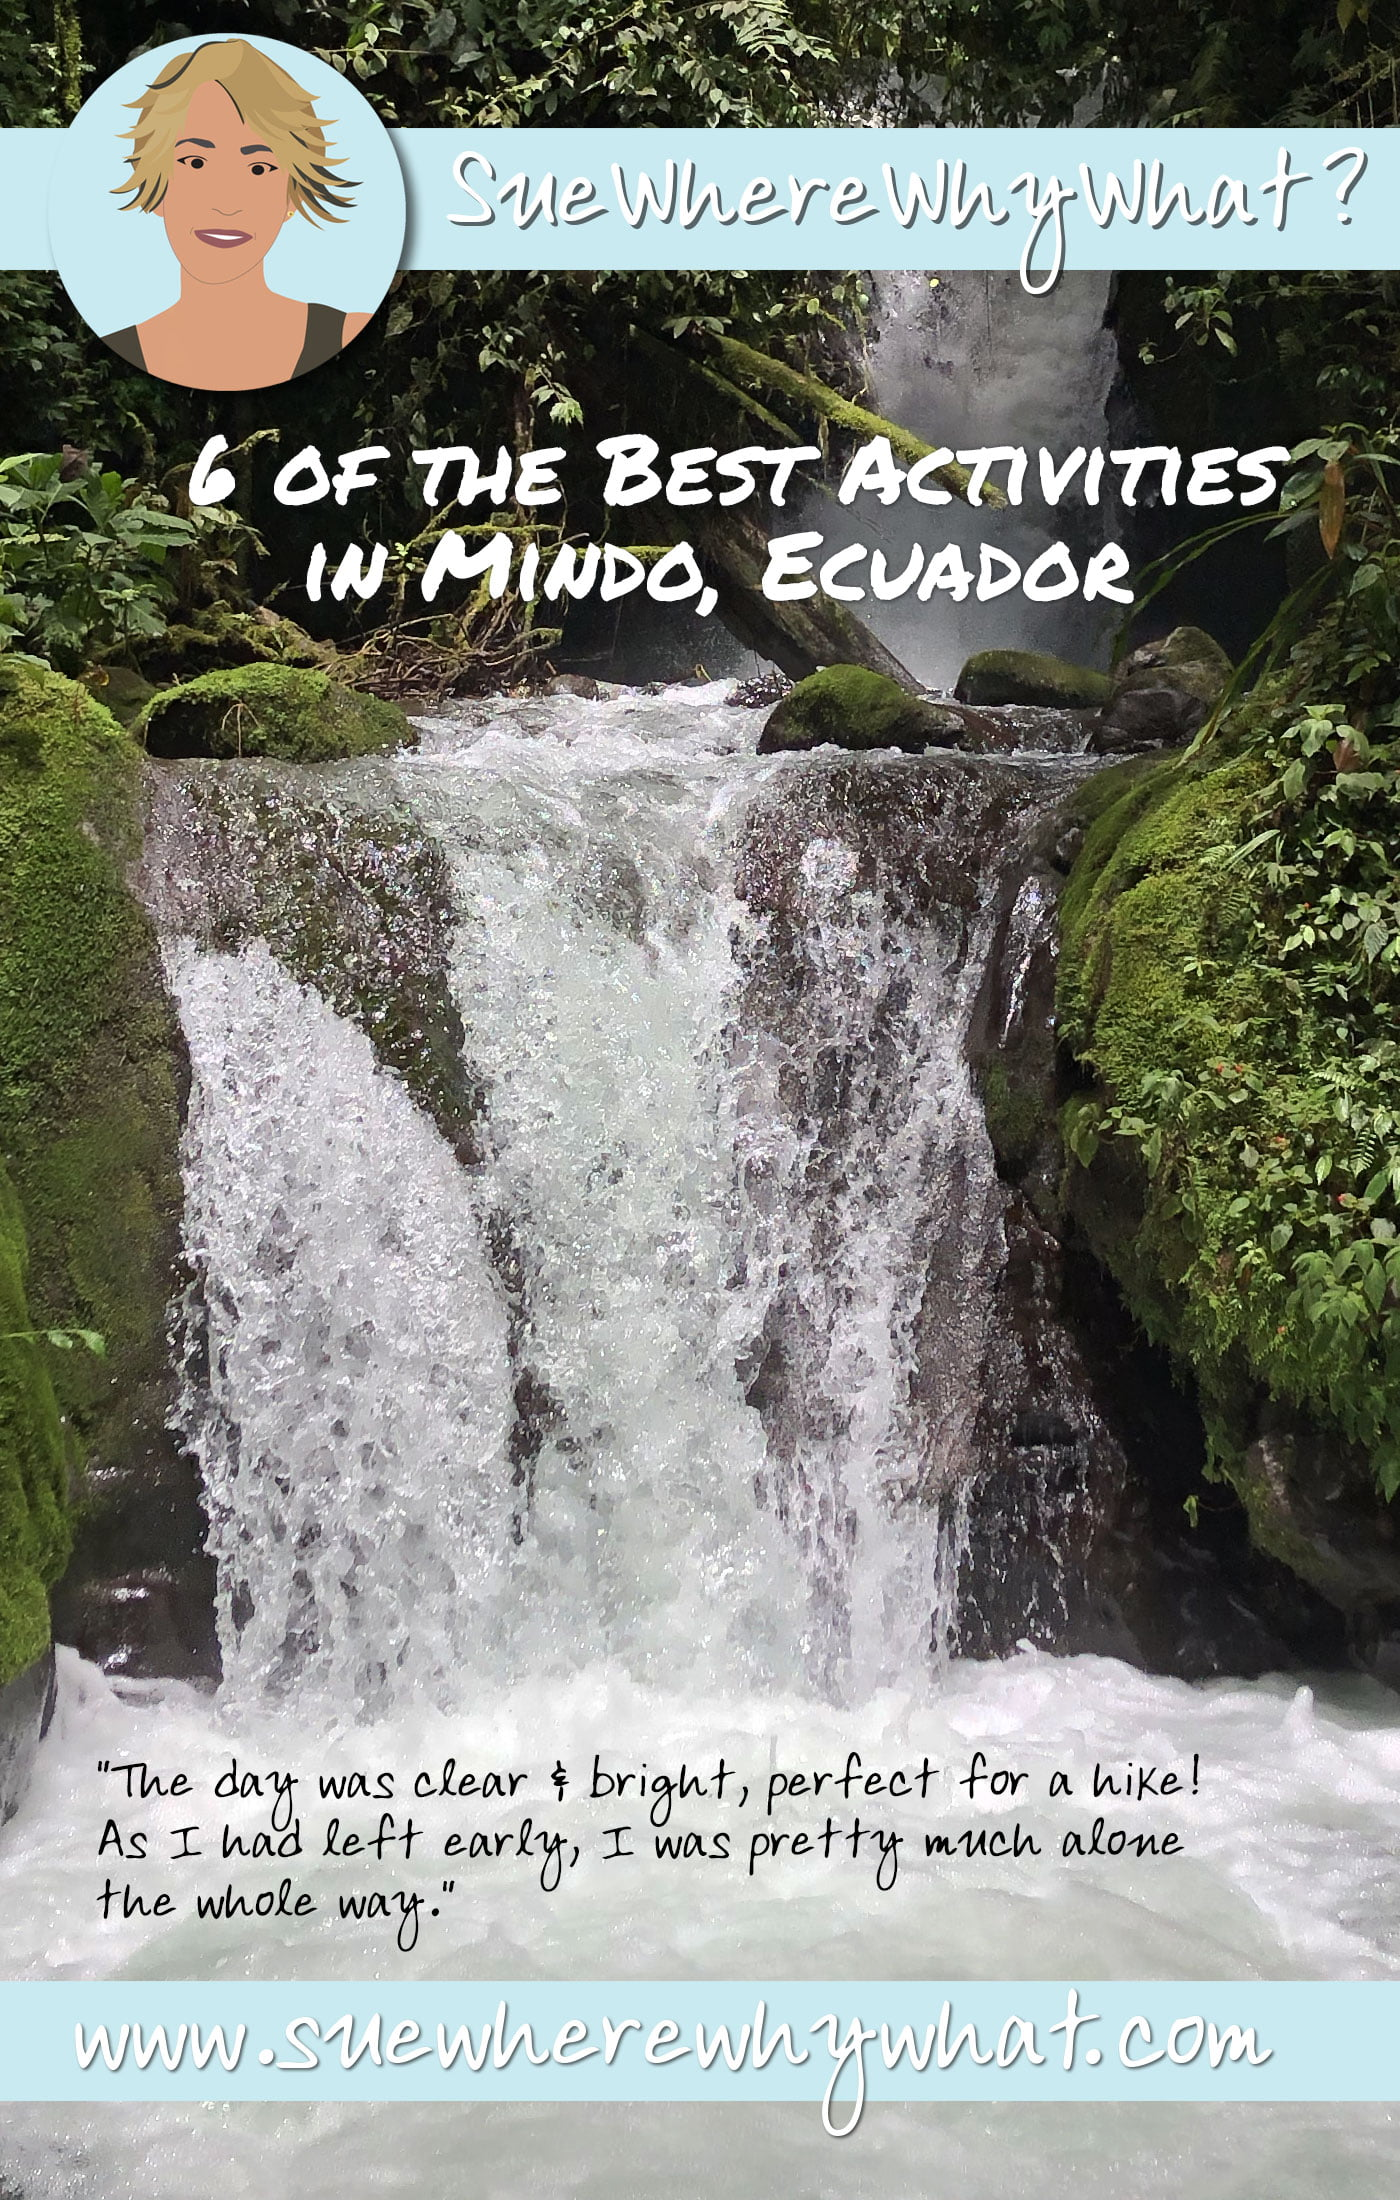 6 of The Best Activities in Mindo, Ecuador